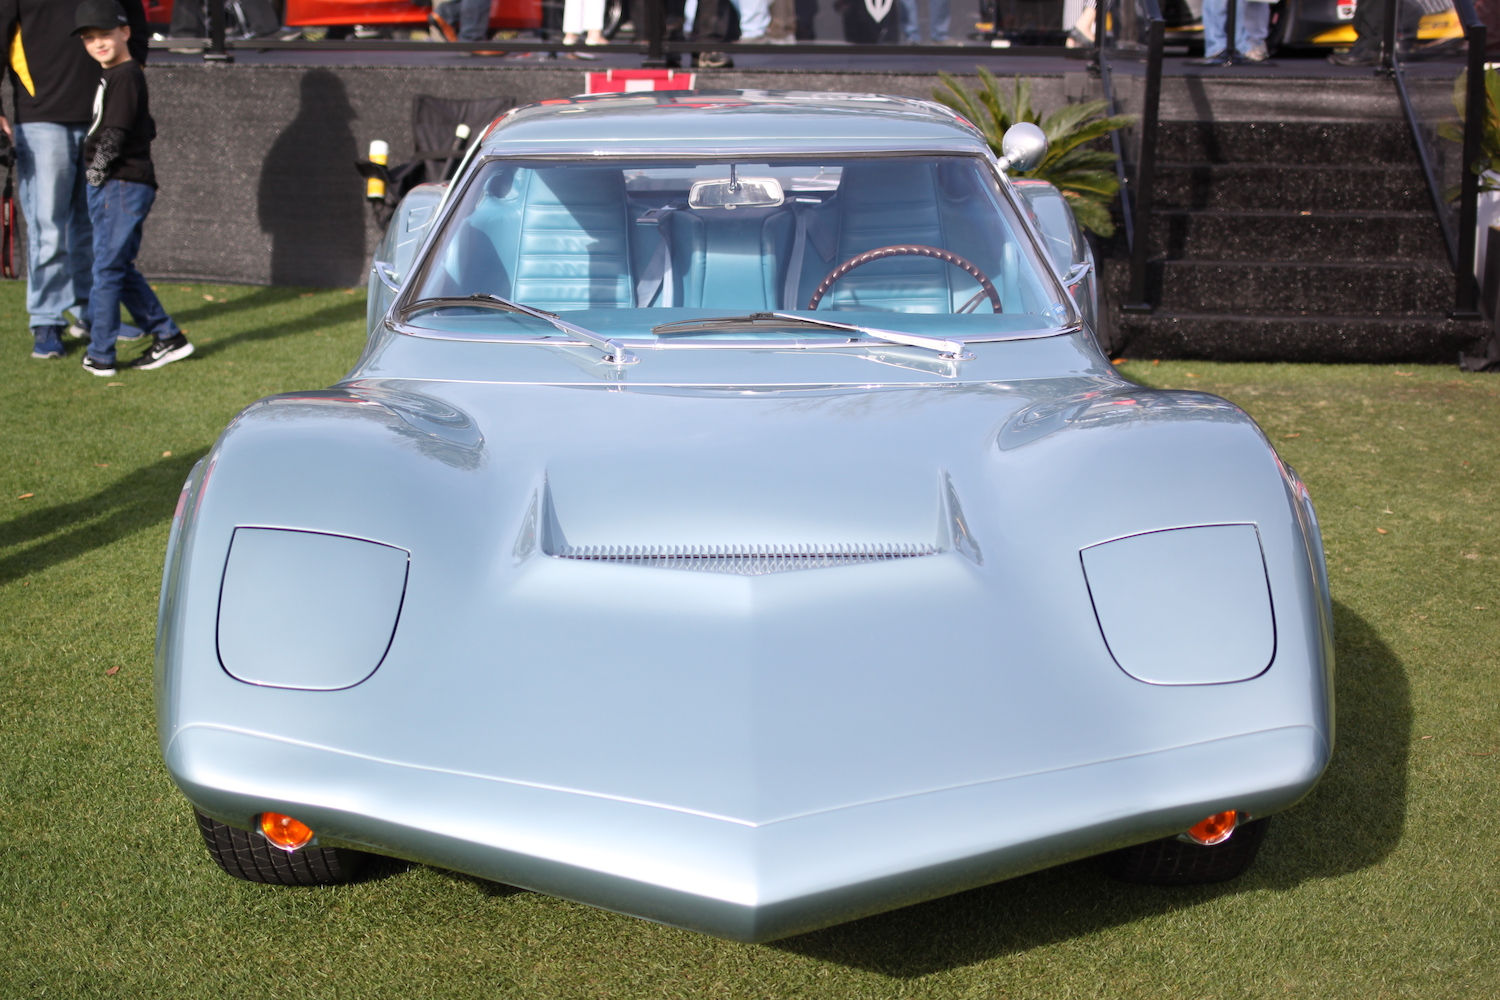 xp 819 front